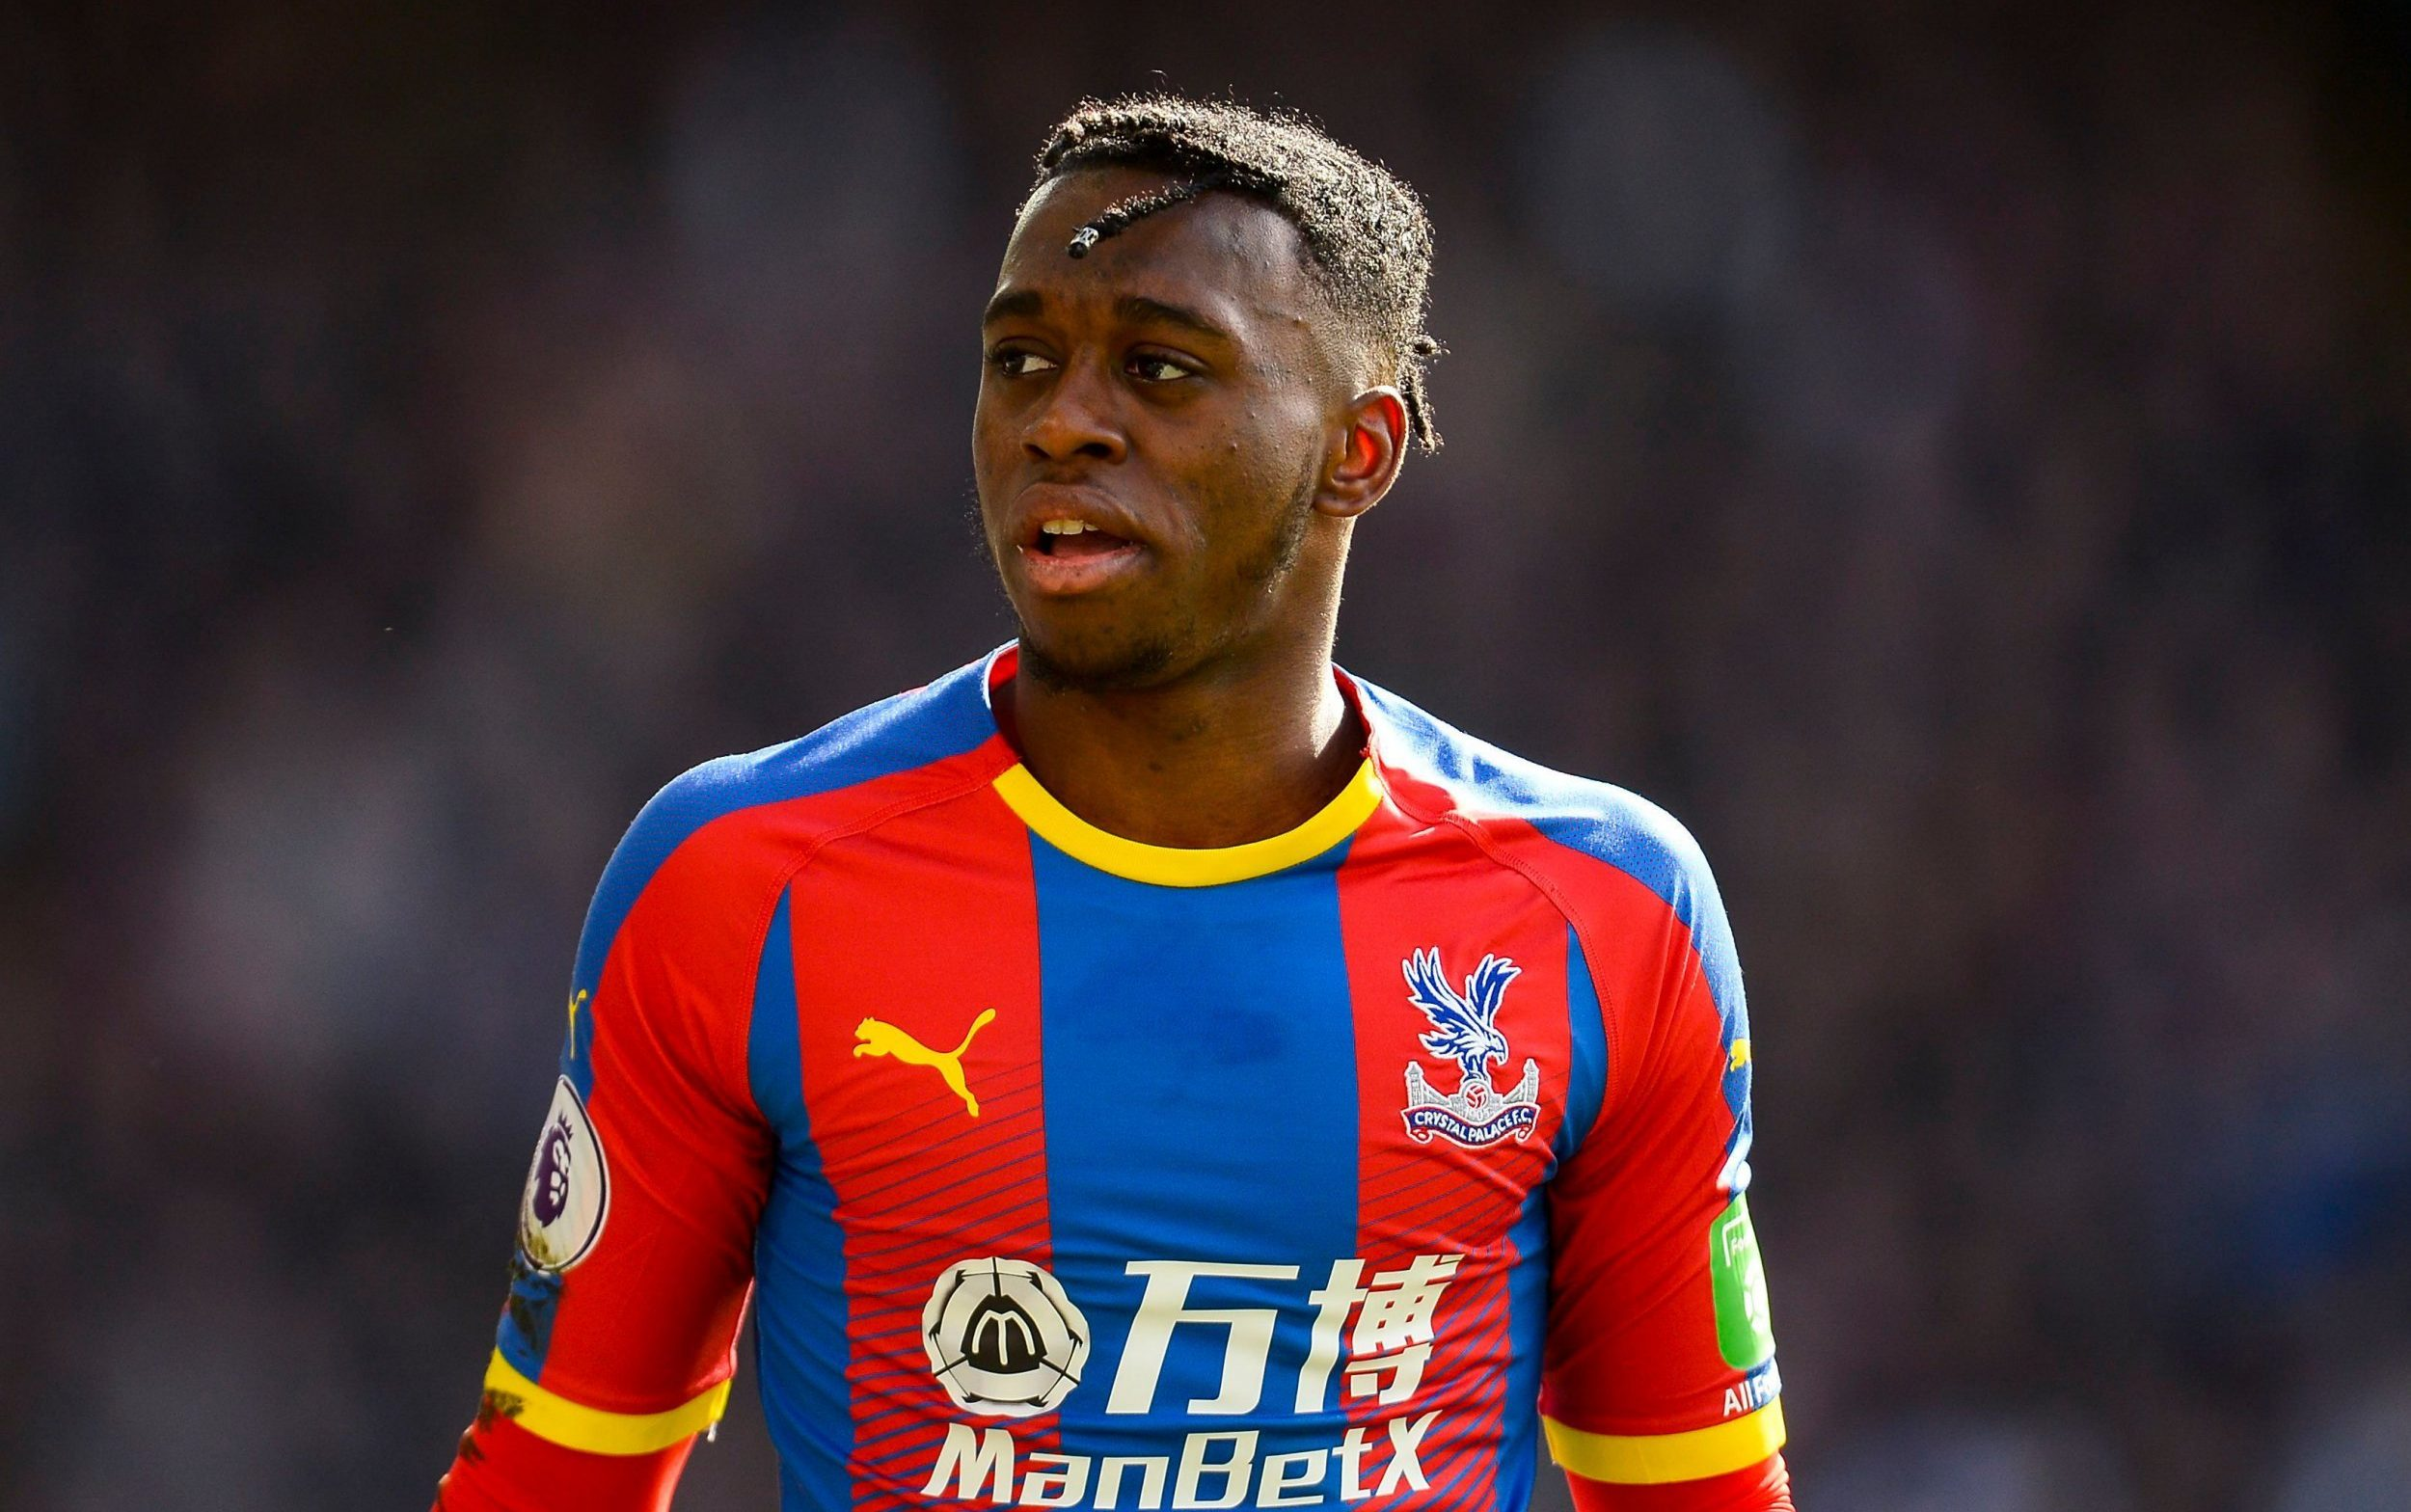 Arsenal consider swapping two players in bid to sign £40m Crystal Palace right-back Aaron Wan-Bissaka